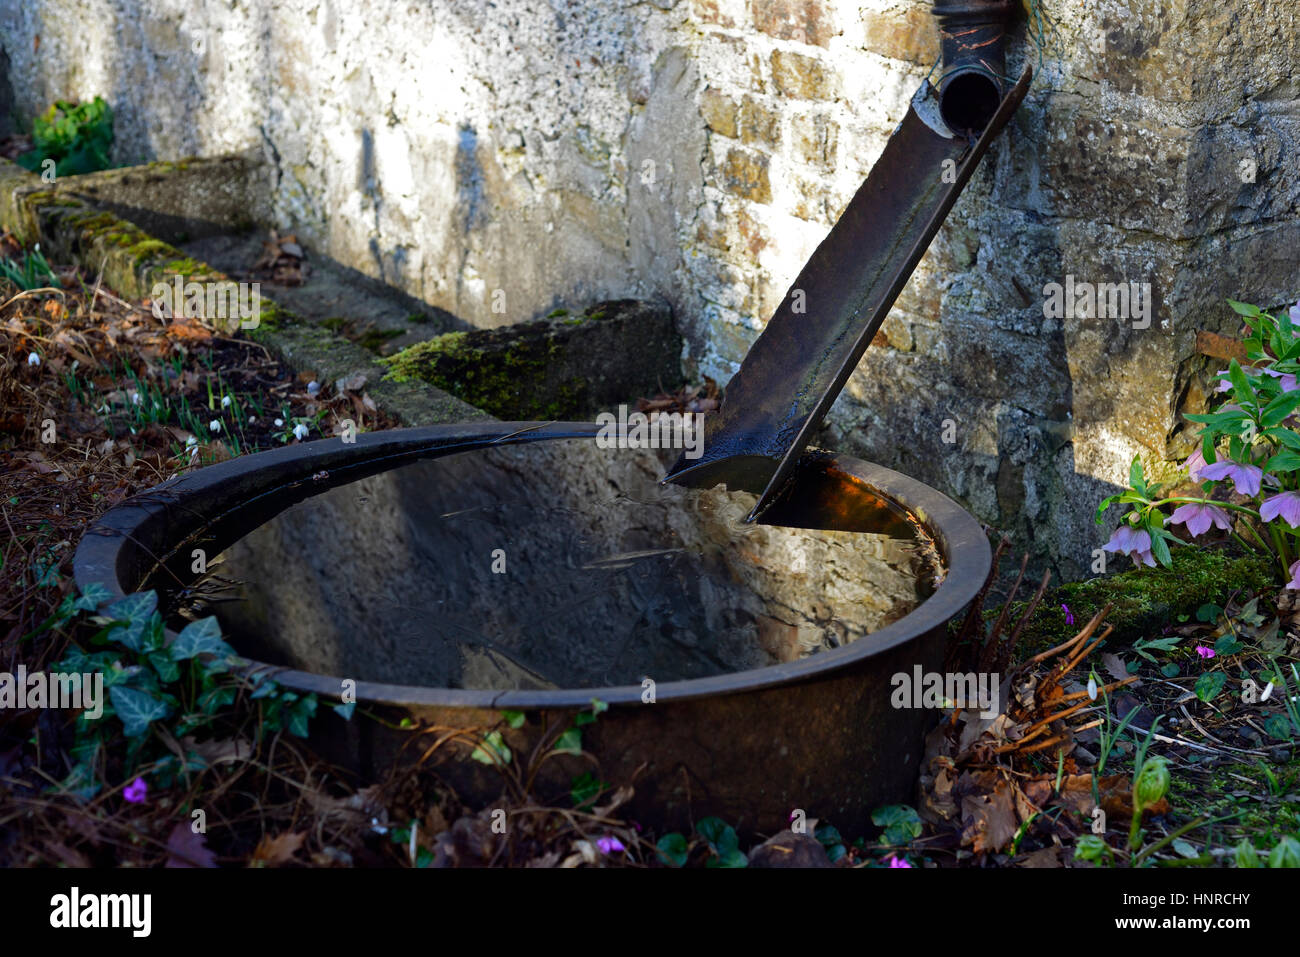 Old, Water Trough, Basin, Cast Iron, Collect, Rain, Rainwater, Garden  Feature, Makeshift, Temporary, Troughs, Collecting, Collection, Watering,